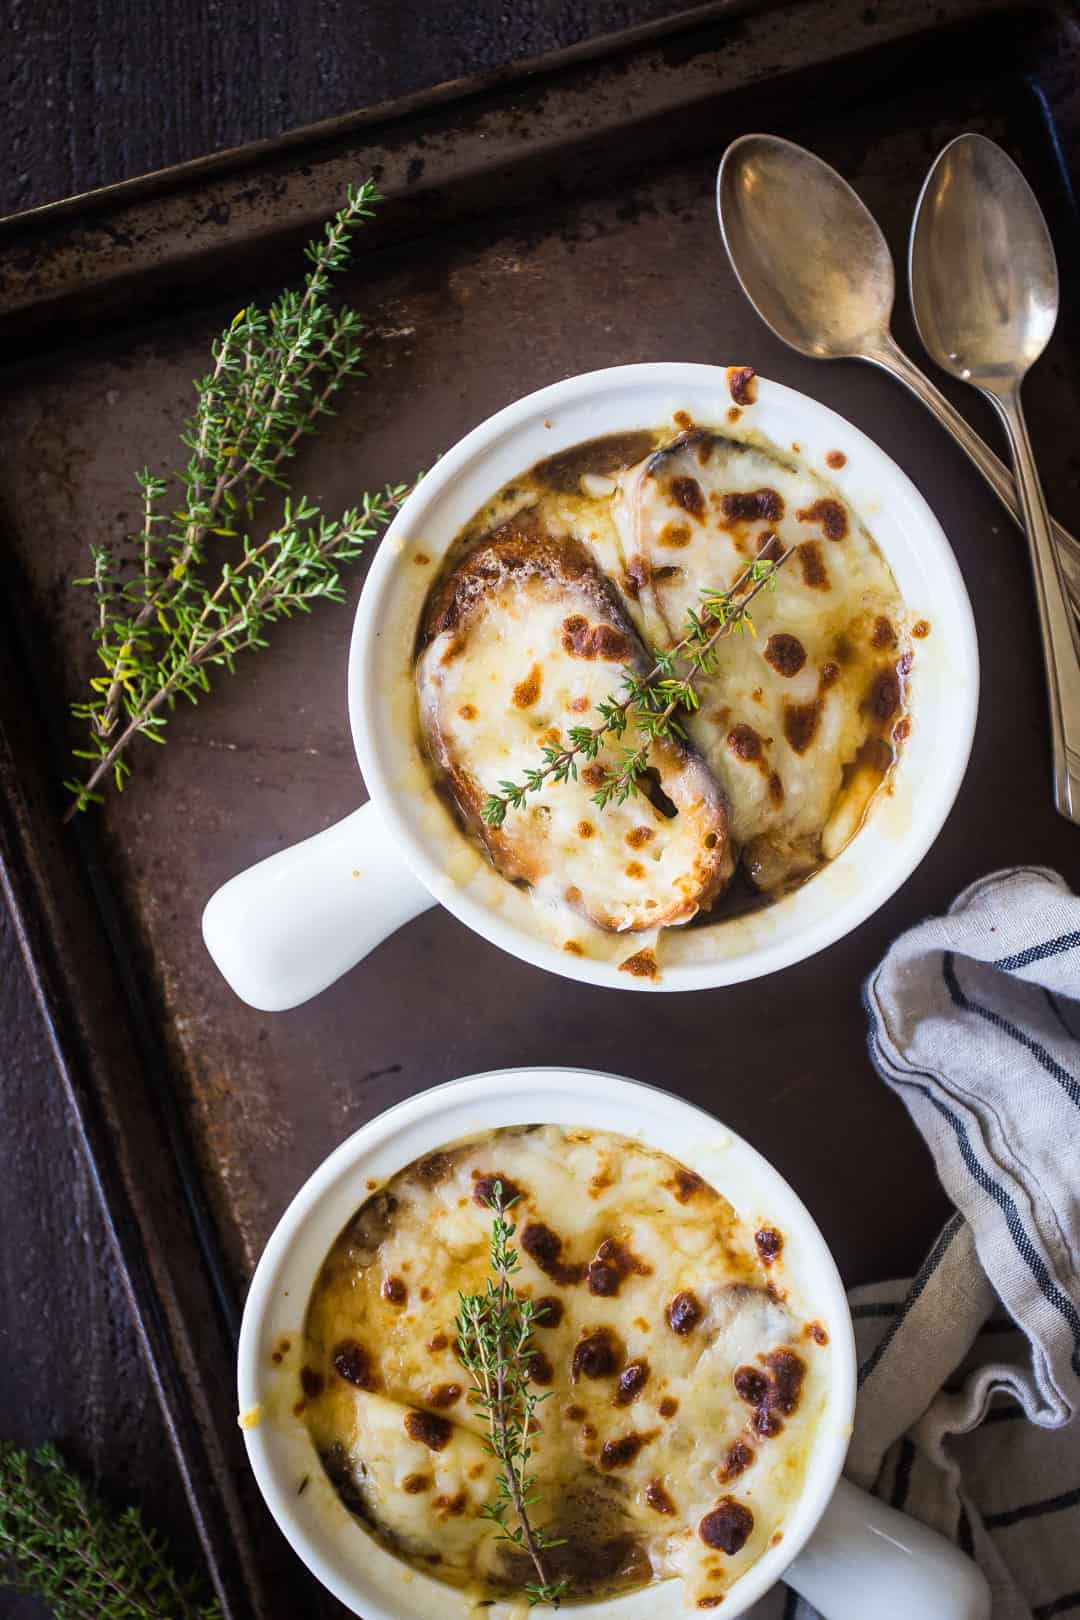 Overhead image of two bowls of French onion soup on a brown tray with a striped cloth, vintage silver spoons, and a sprig of fresh thyme.